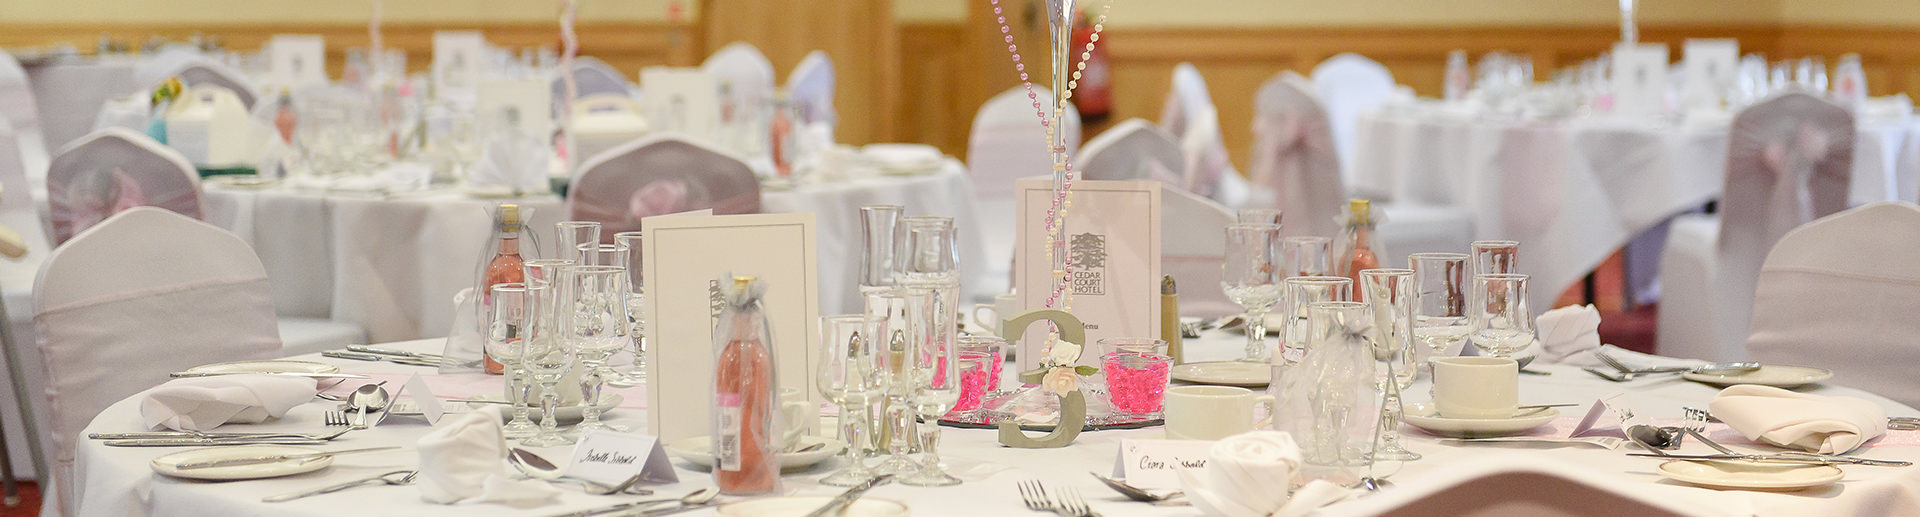 Wakefield wedding table decorations